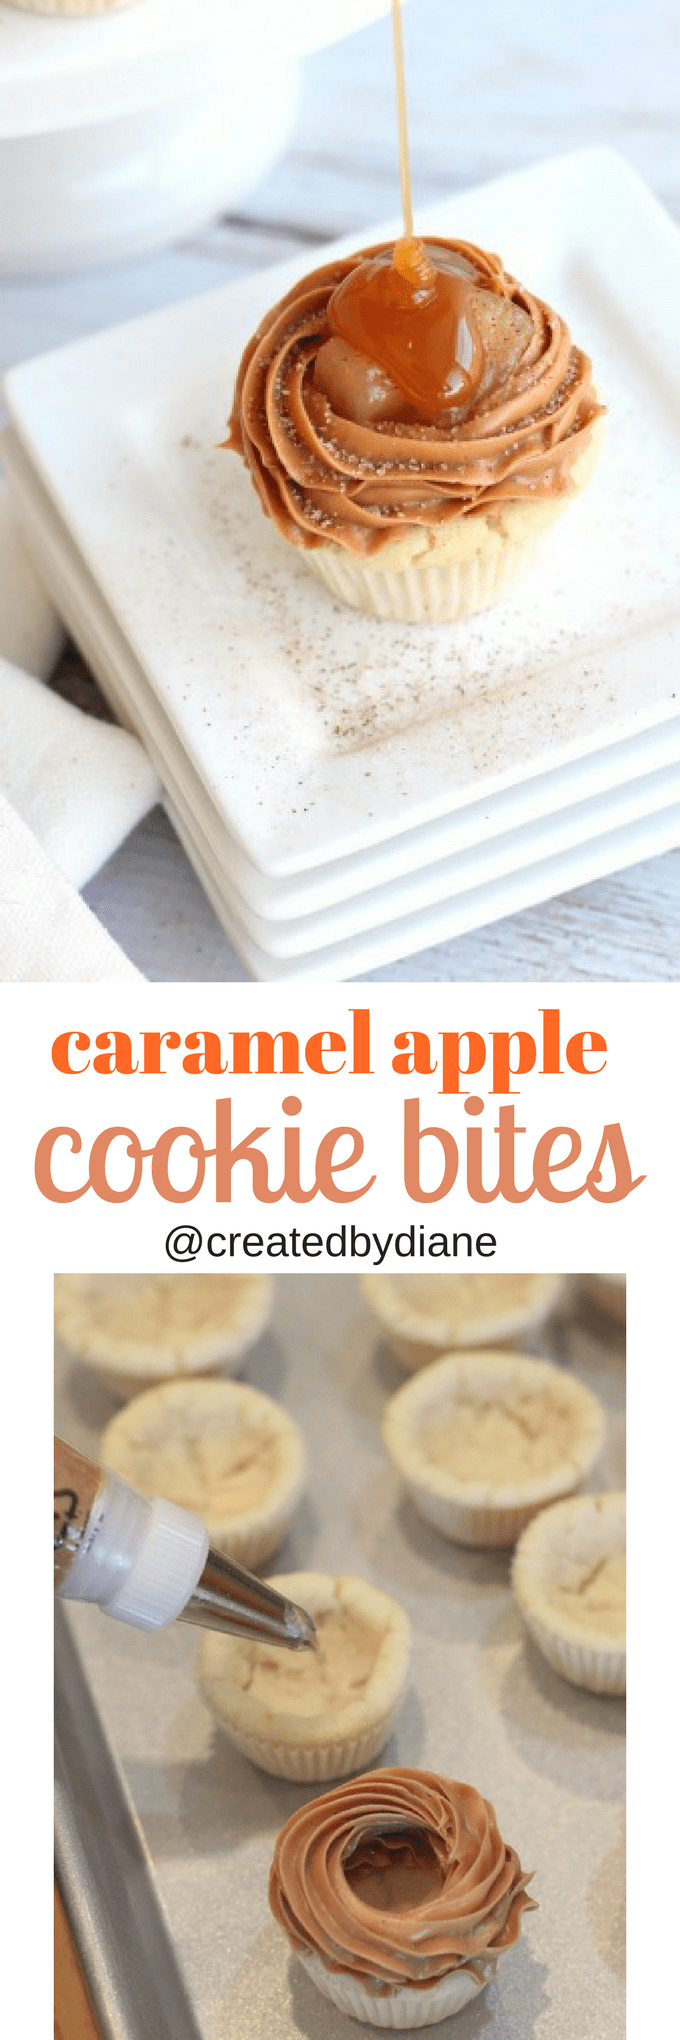 caramel apple cookie bites from @createdbydiane